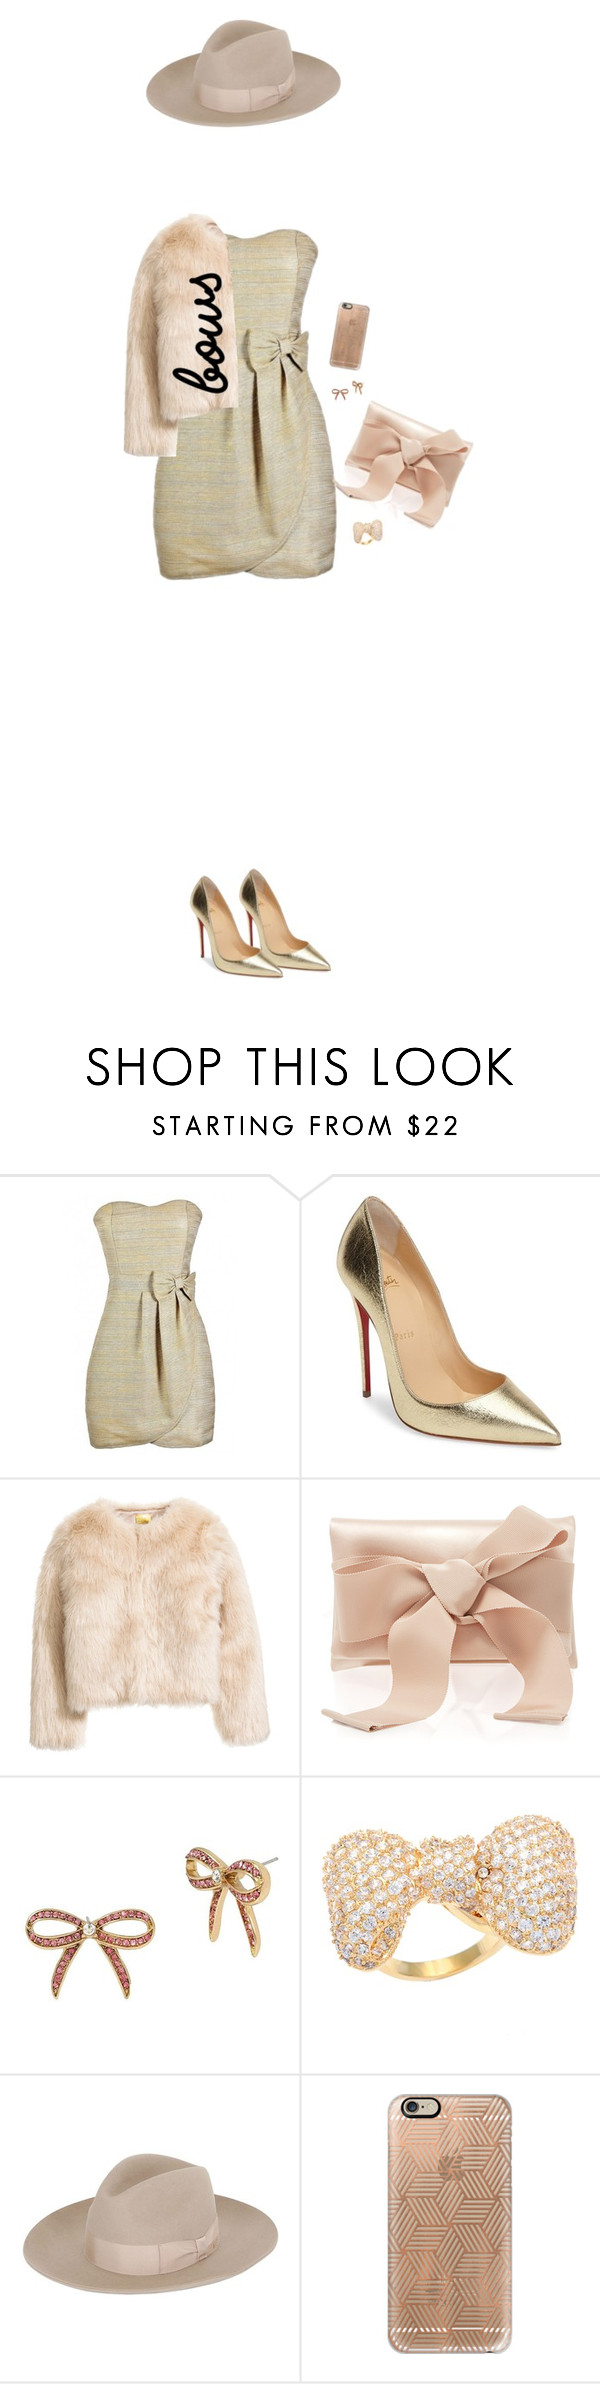 """Senza titolo #5593"" by waikiki24 ❤ liked on Polyvore featuring Christian Louboutin, Oscar de la Renta, Betsey Johnson, Kate Bissett, Super Duper and Casetify"